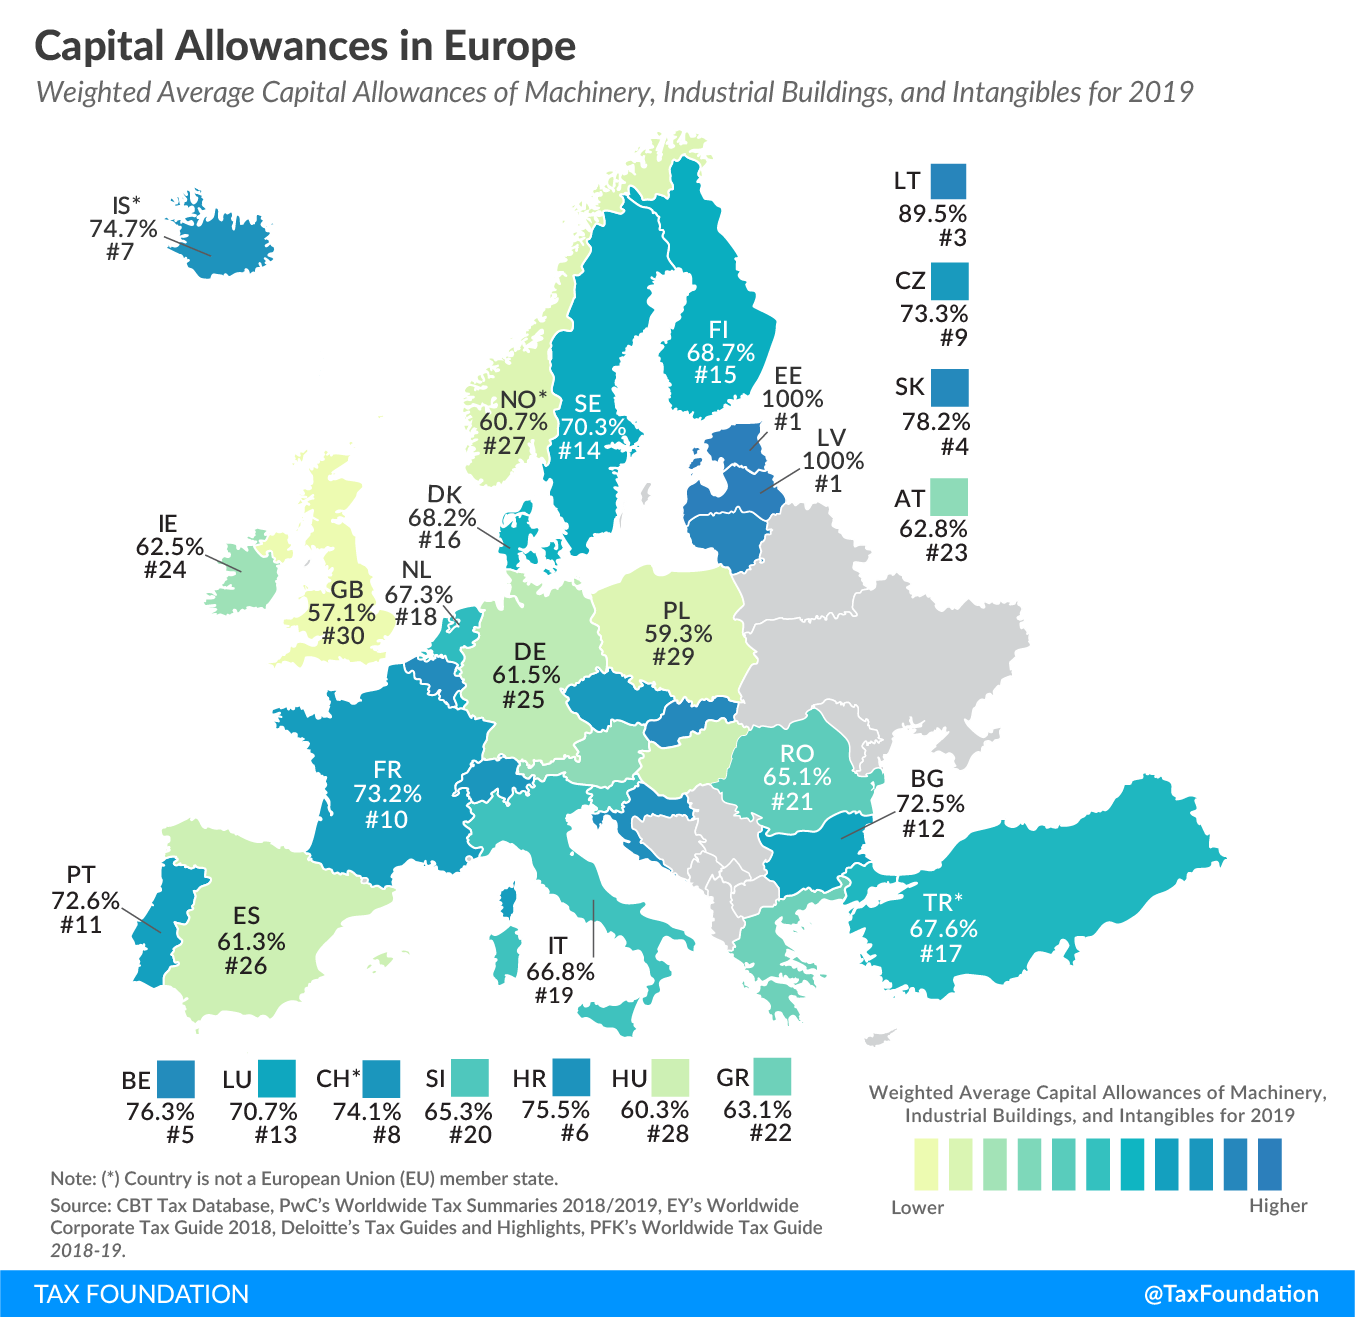 capital allowances in europe 2019 oecd eu